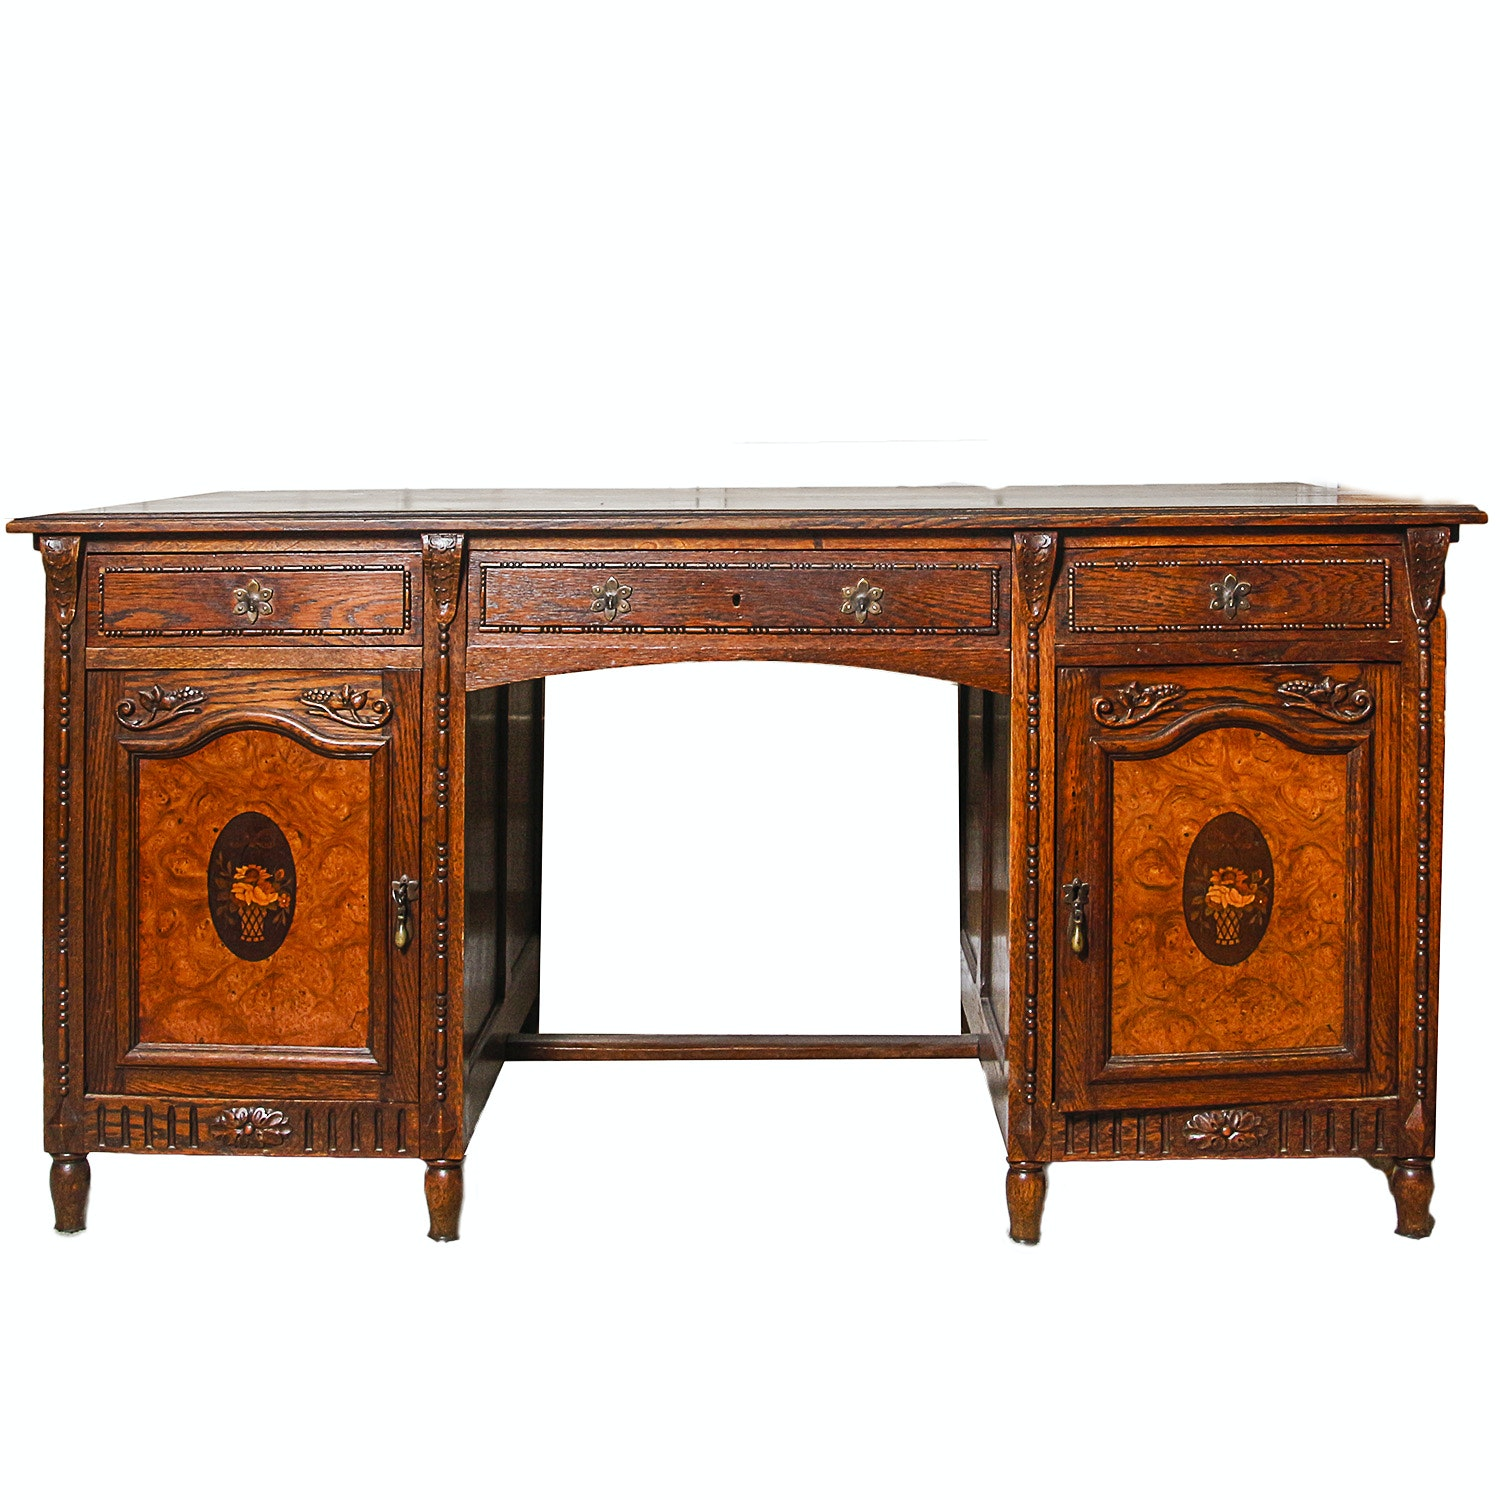 Vintage Jacobean Revival Style Double Pedestal Desk with Neoclassical Inlays